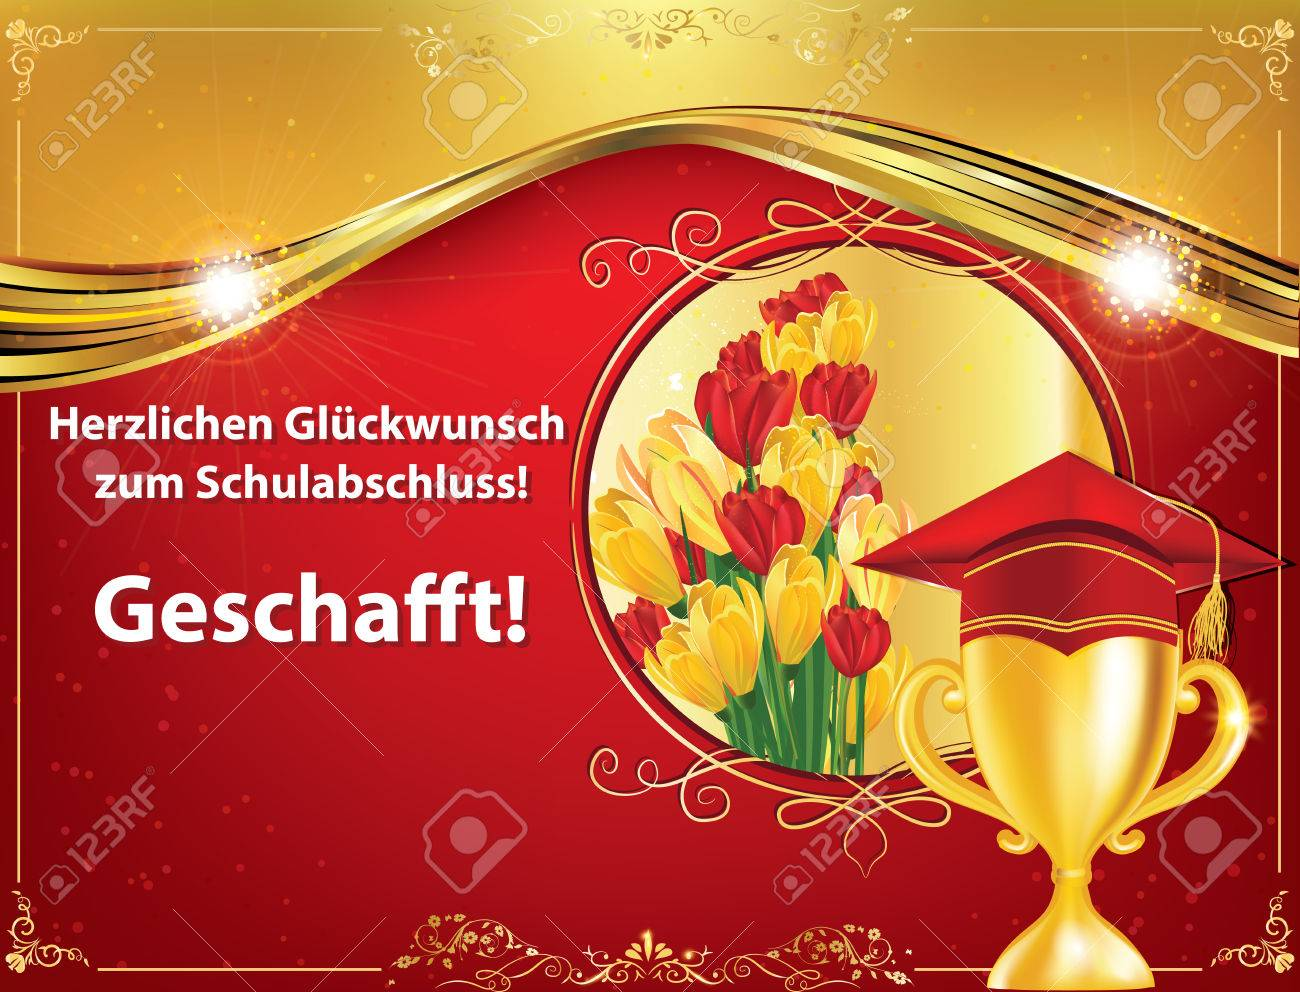 german graduation greeting card congratulations on your graduations you did it herzlichen